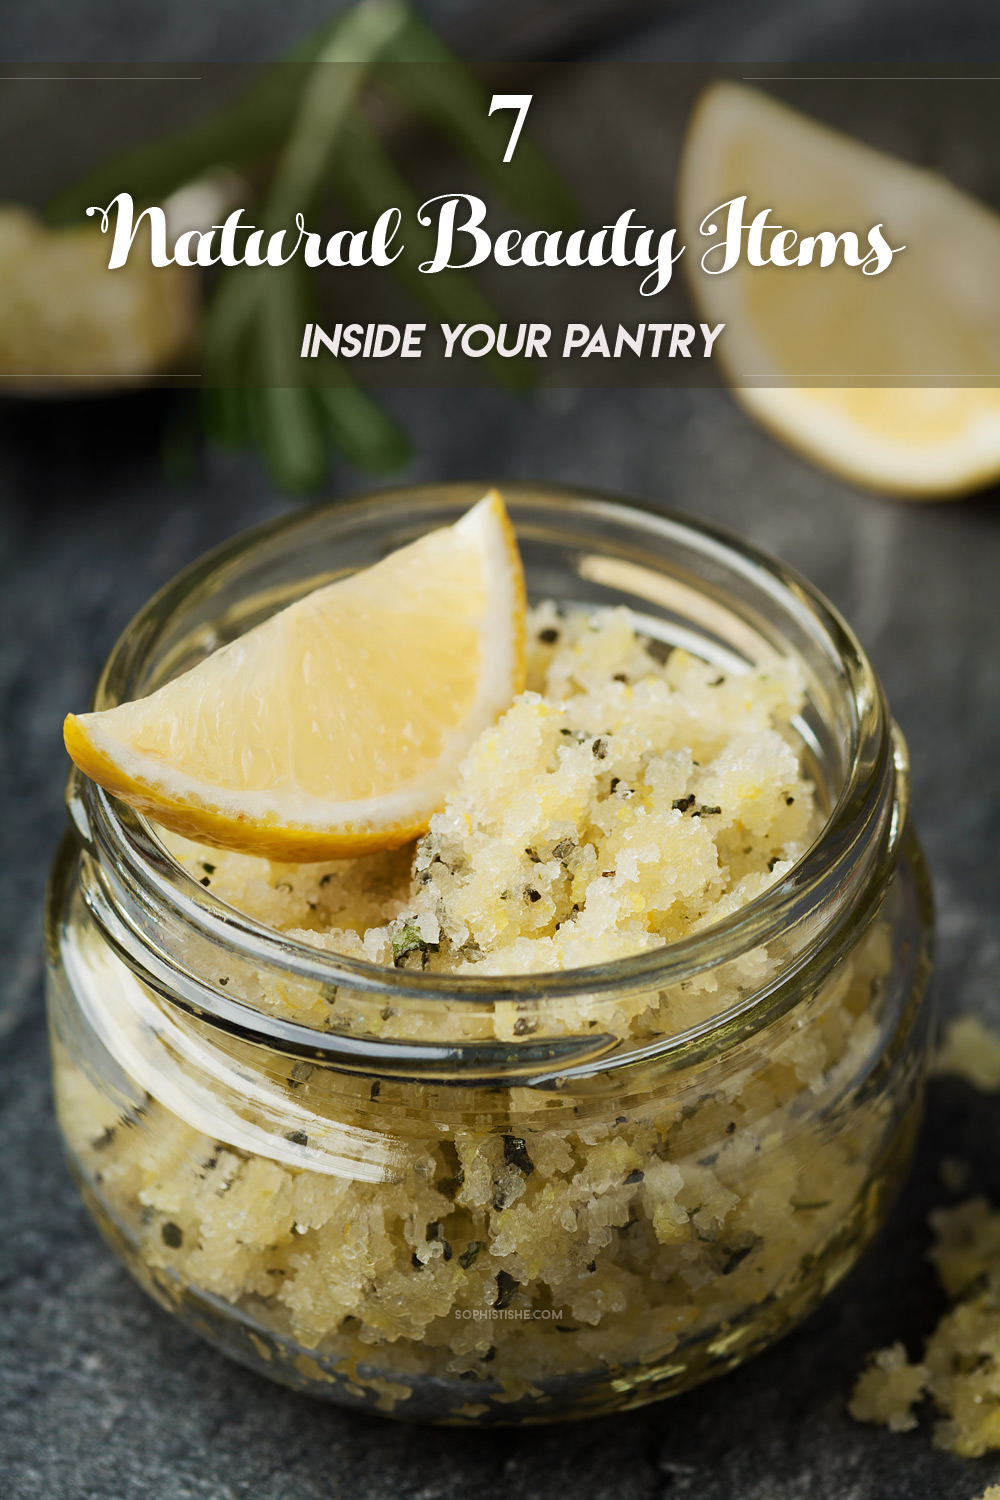 7 Natural Beauty Items Inside Your Pantry